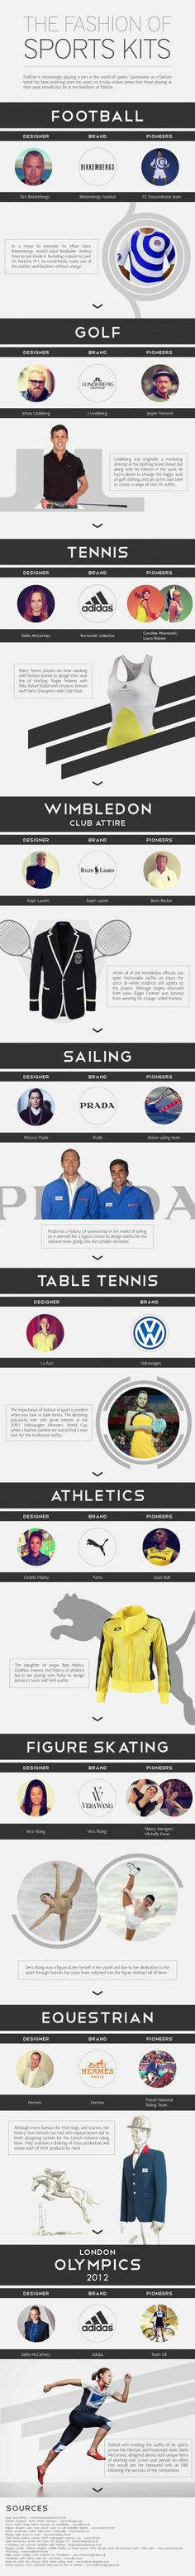 27d98eea33189 The Fashion of Sports Kits infographic | Submit infographics Tennis Tips,  Golf Tips, Golf